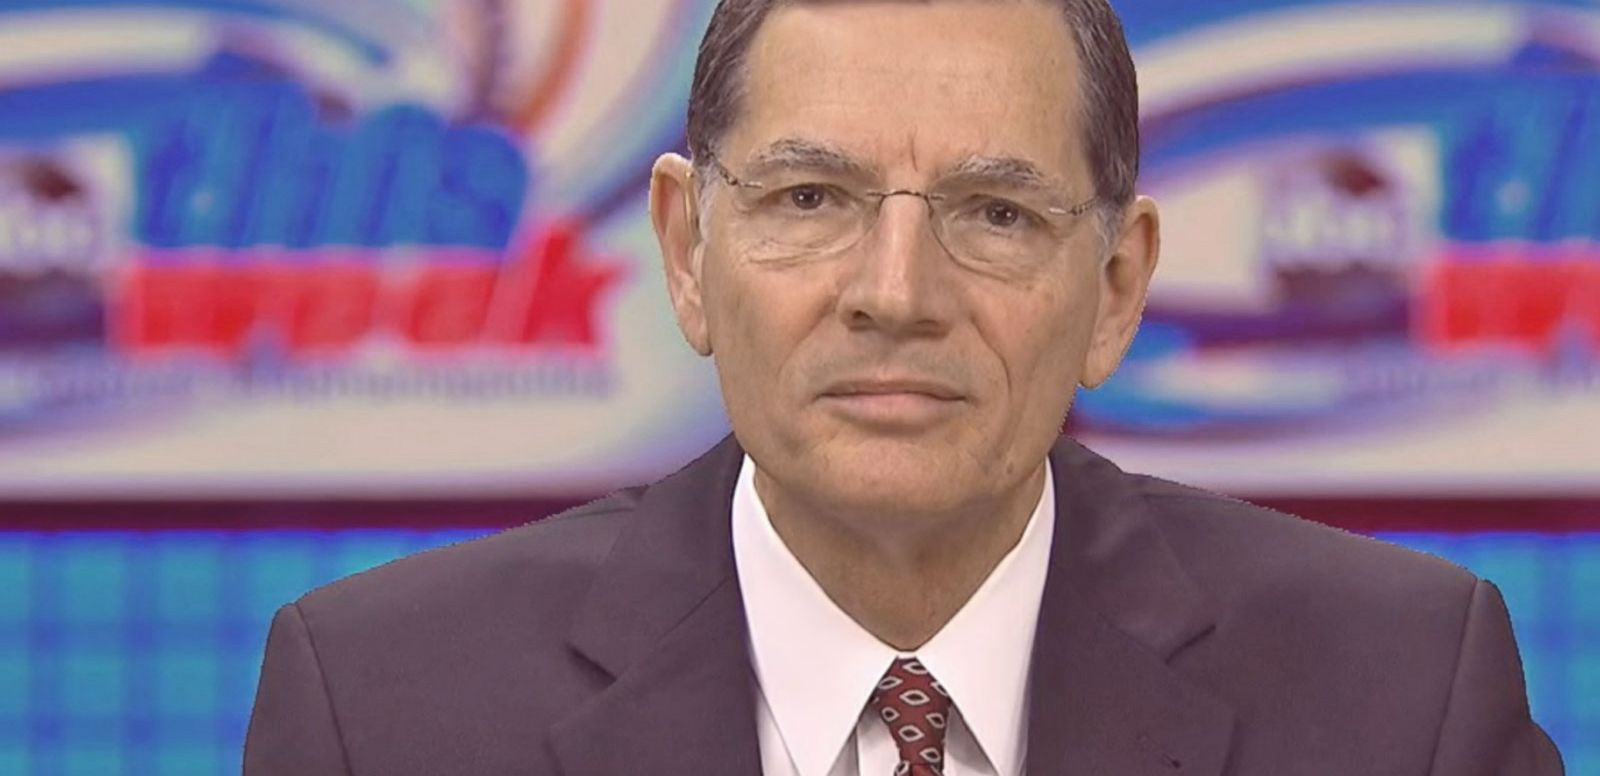 VIDEO: Sen. John Barrasso on GOP Platform, 2016 Presidential Race